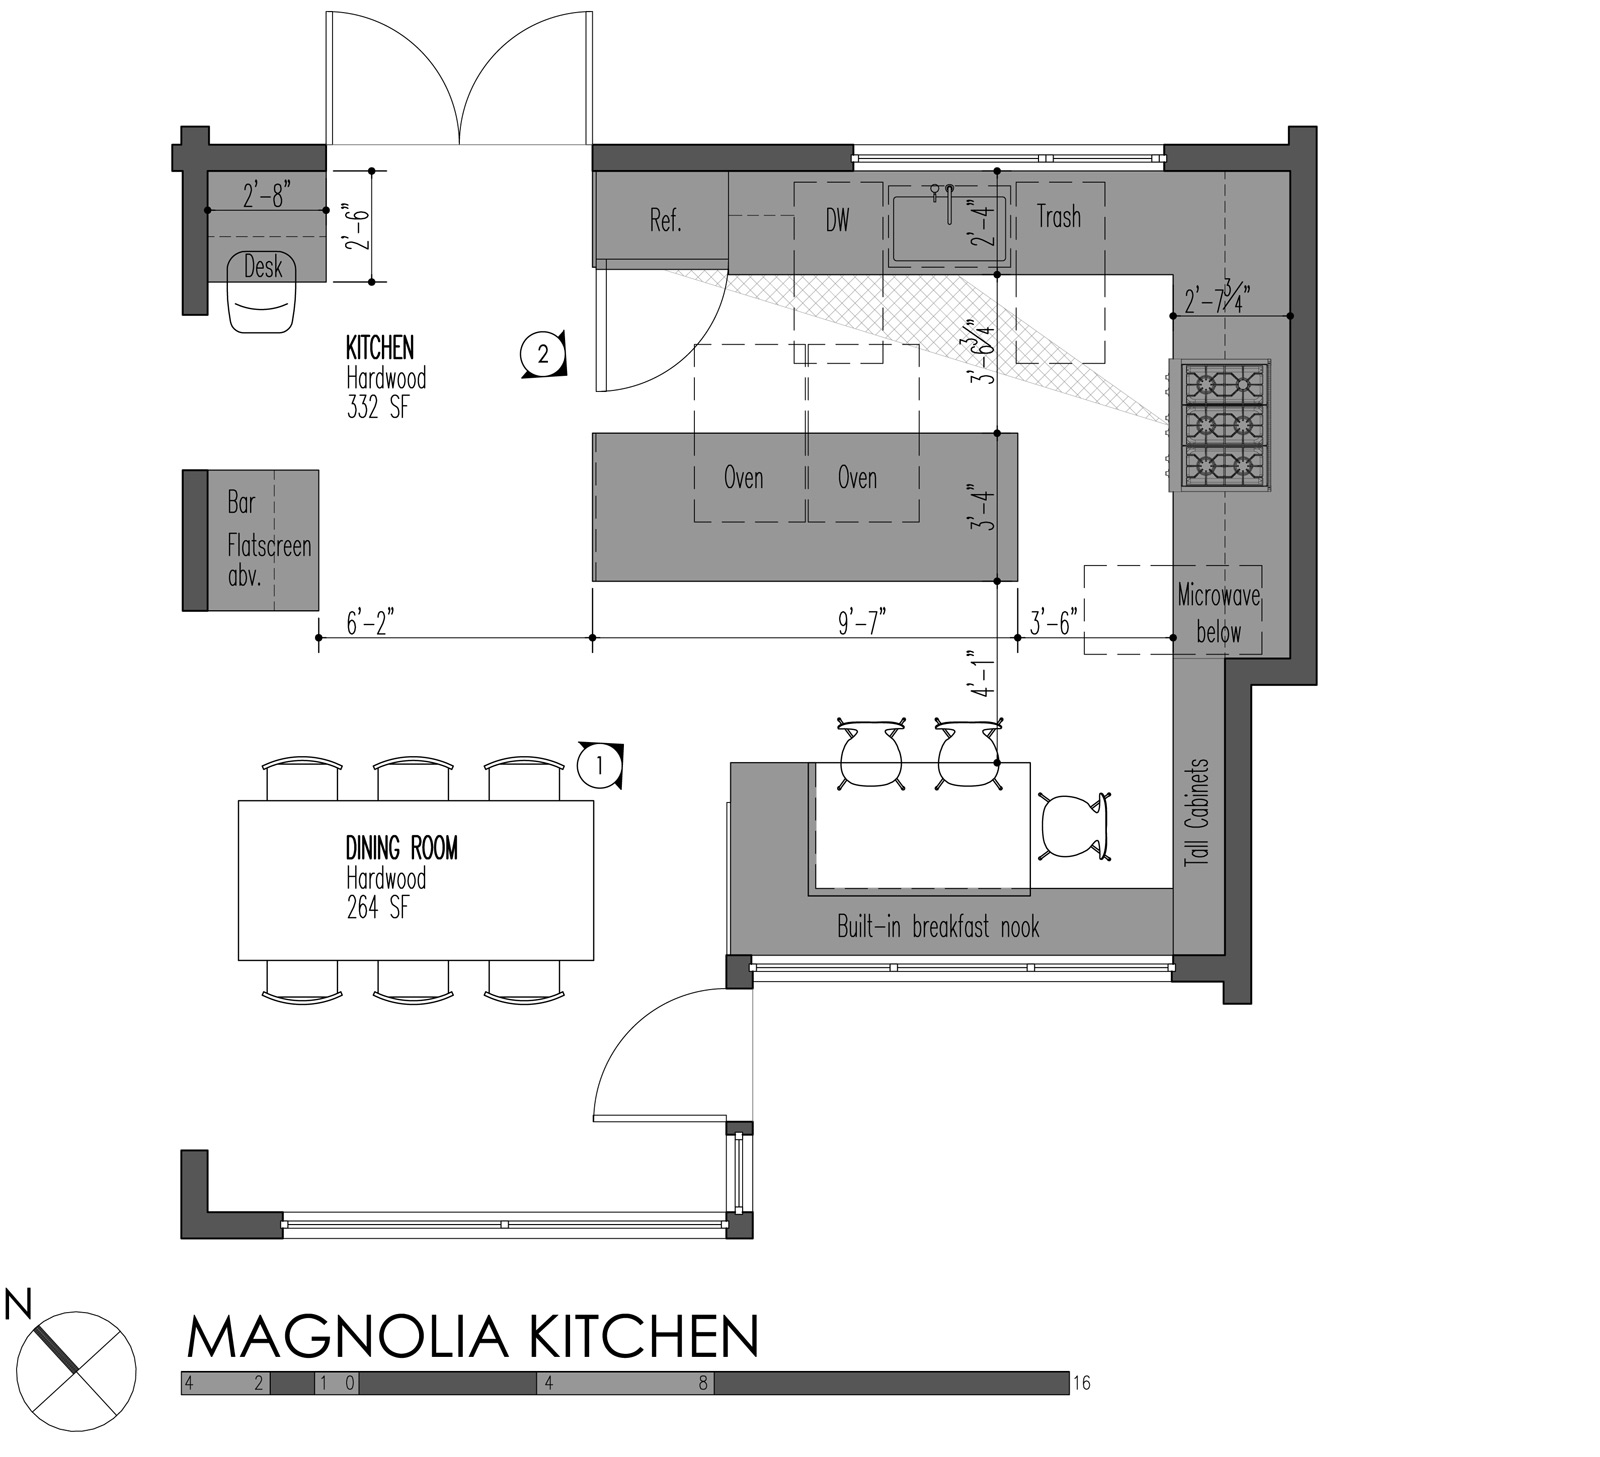 Industrial Kitchen Layout Plan: 5 Modern Kitchen Designs & Principles